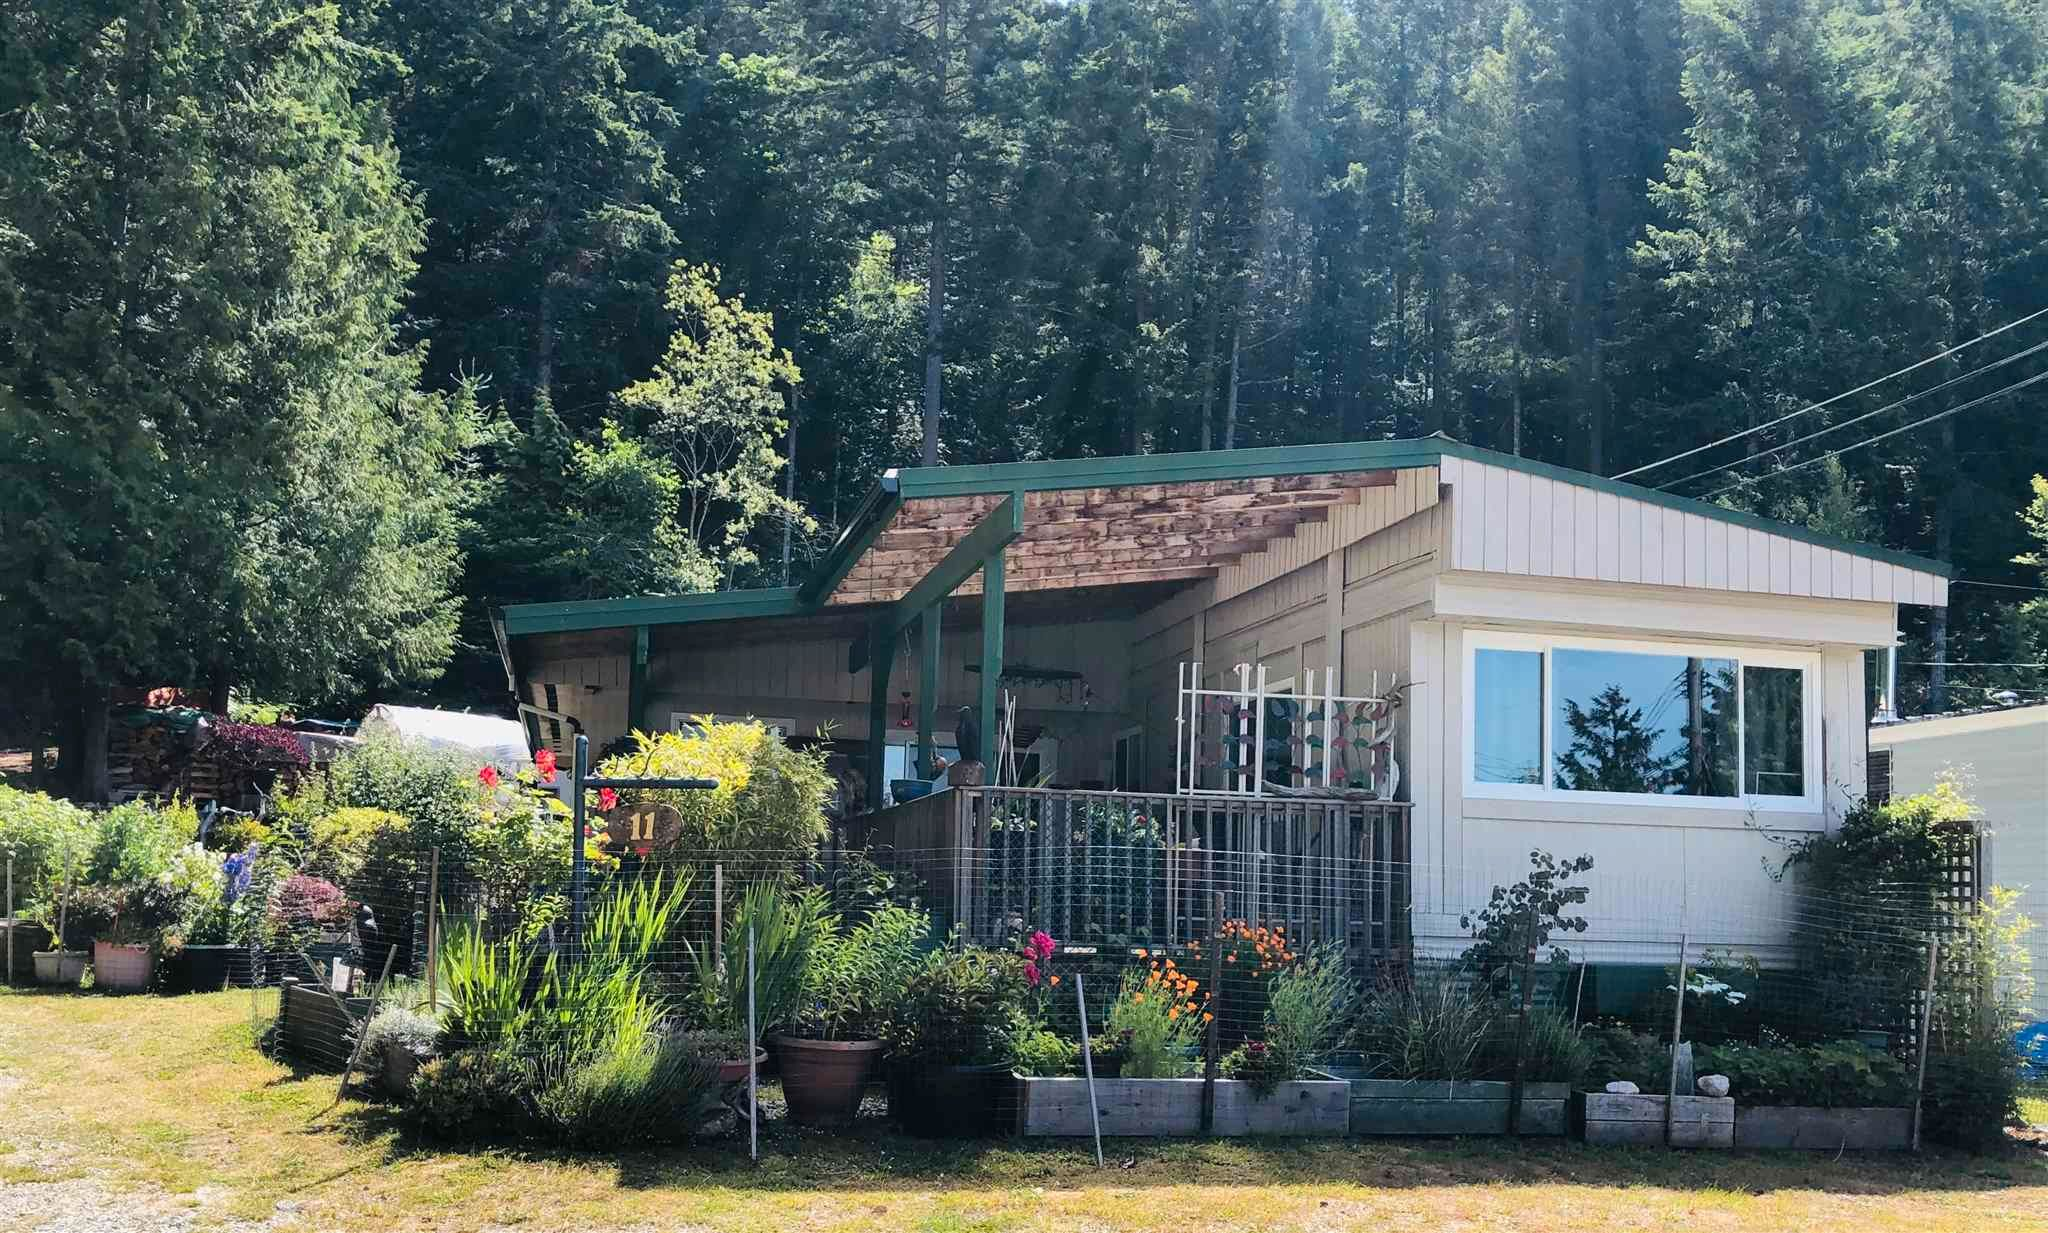 """Main Photo: 11 12248 SUNSHINE COAST Highway in Madeira Park: Pender Harbour Egmont Manufactured Home for sale in """"7 ISLES MOBILE HOME PARK"""" (Sunshine Coast)  : MLS®# R2598686"""